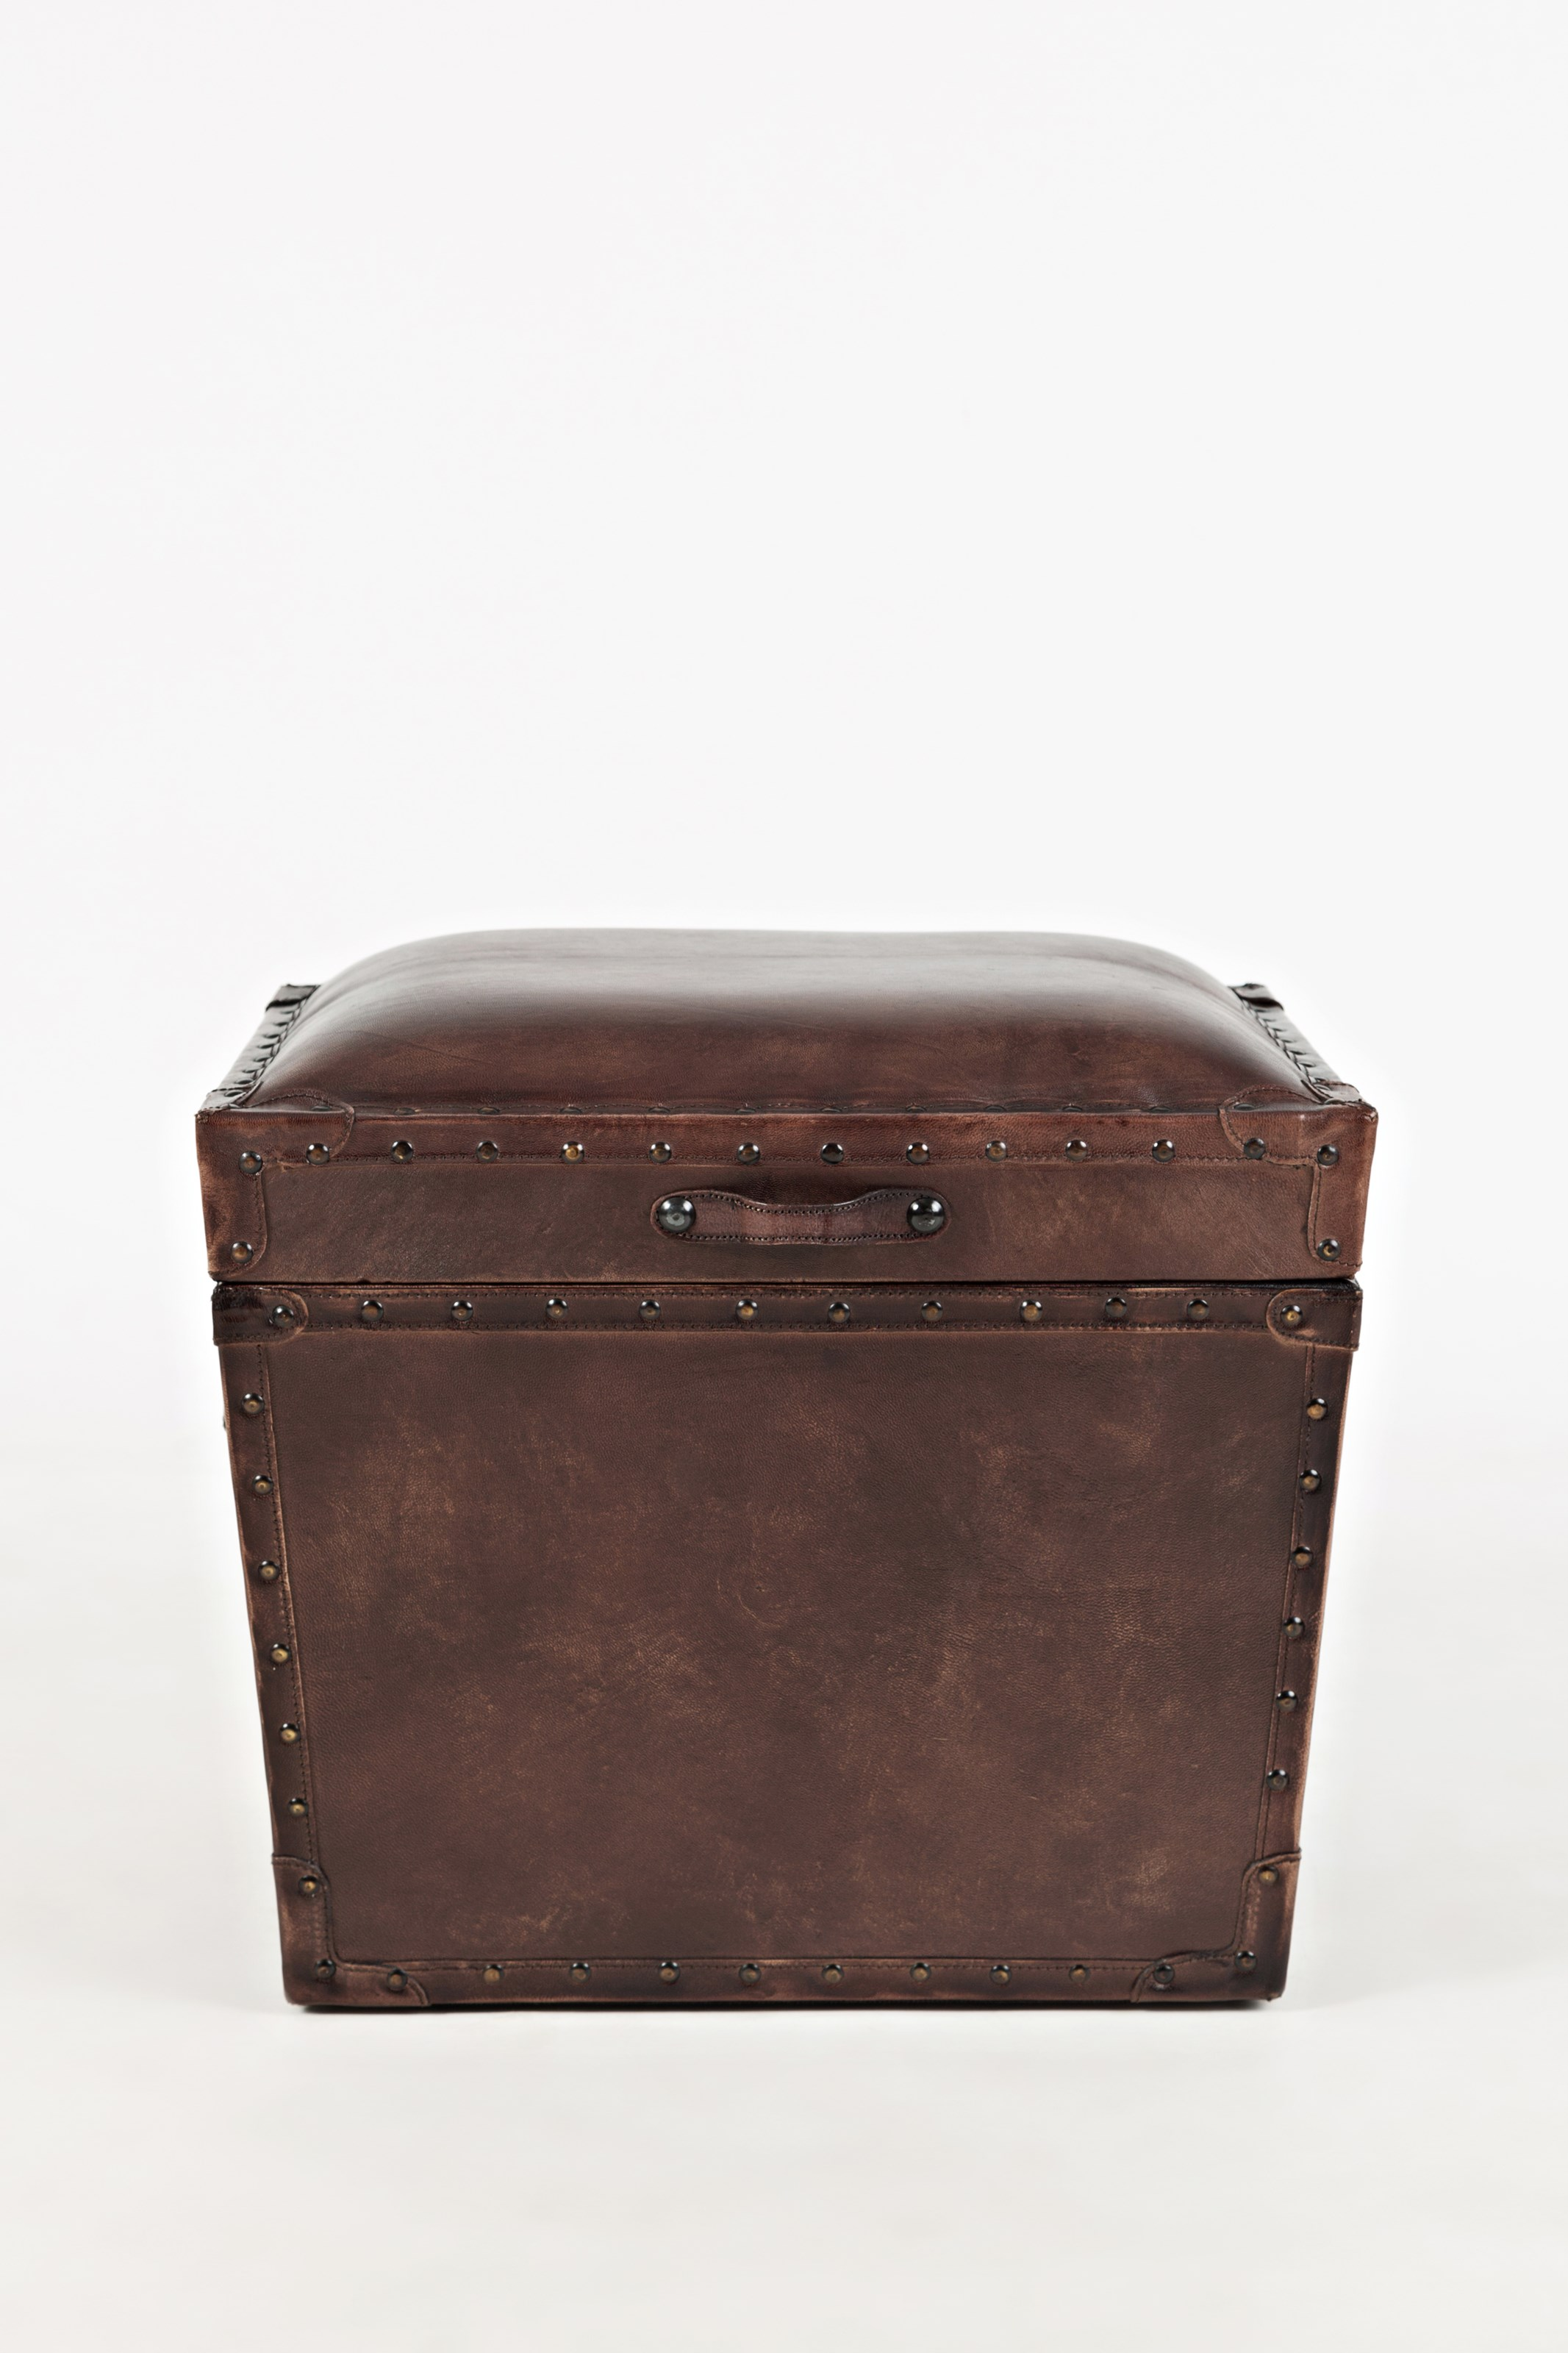 Leather Storage Chest